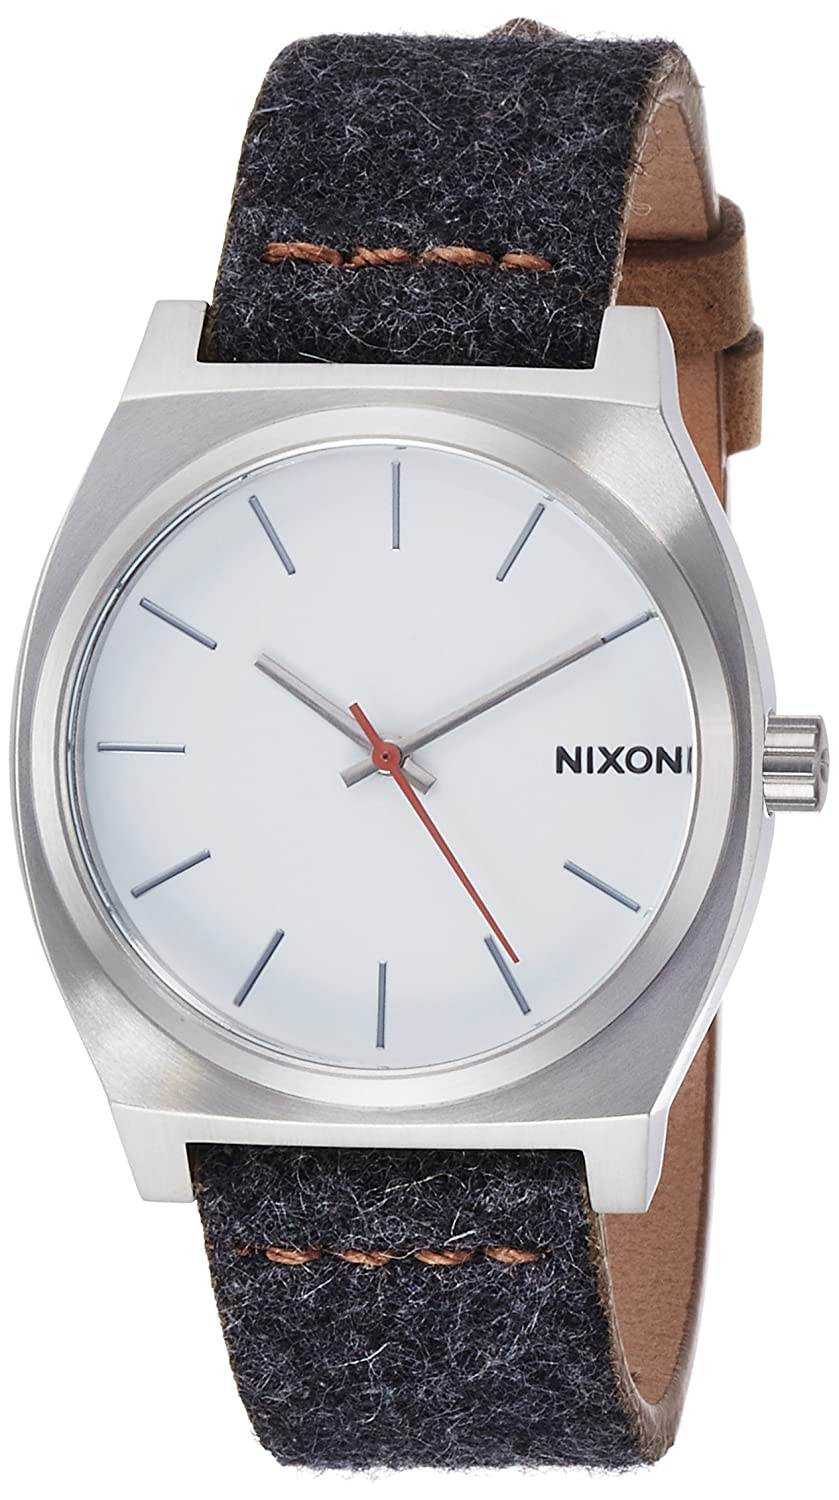 [ニクソン]NIXON TIME TELLER: GRAY/TAN NA0452476-00 【正規輸入品】 B01M0DEEKS